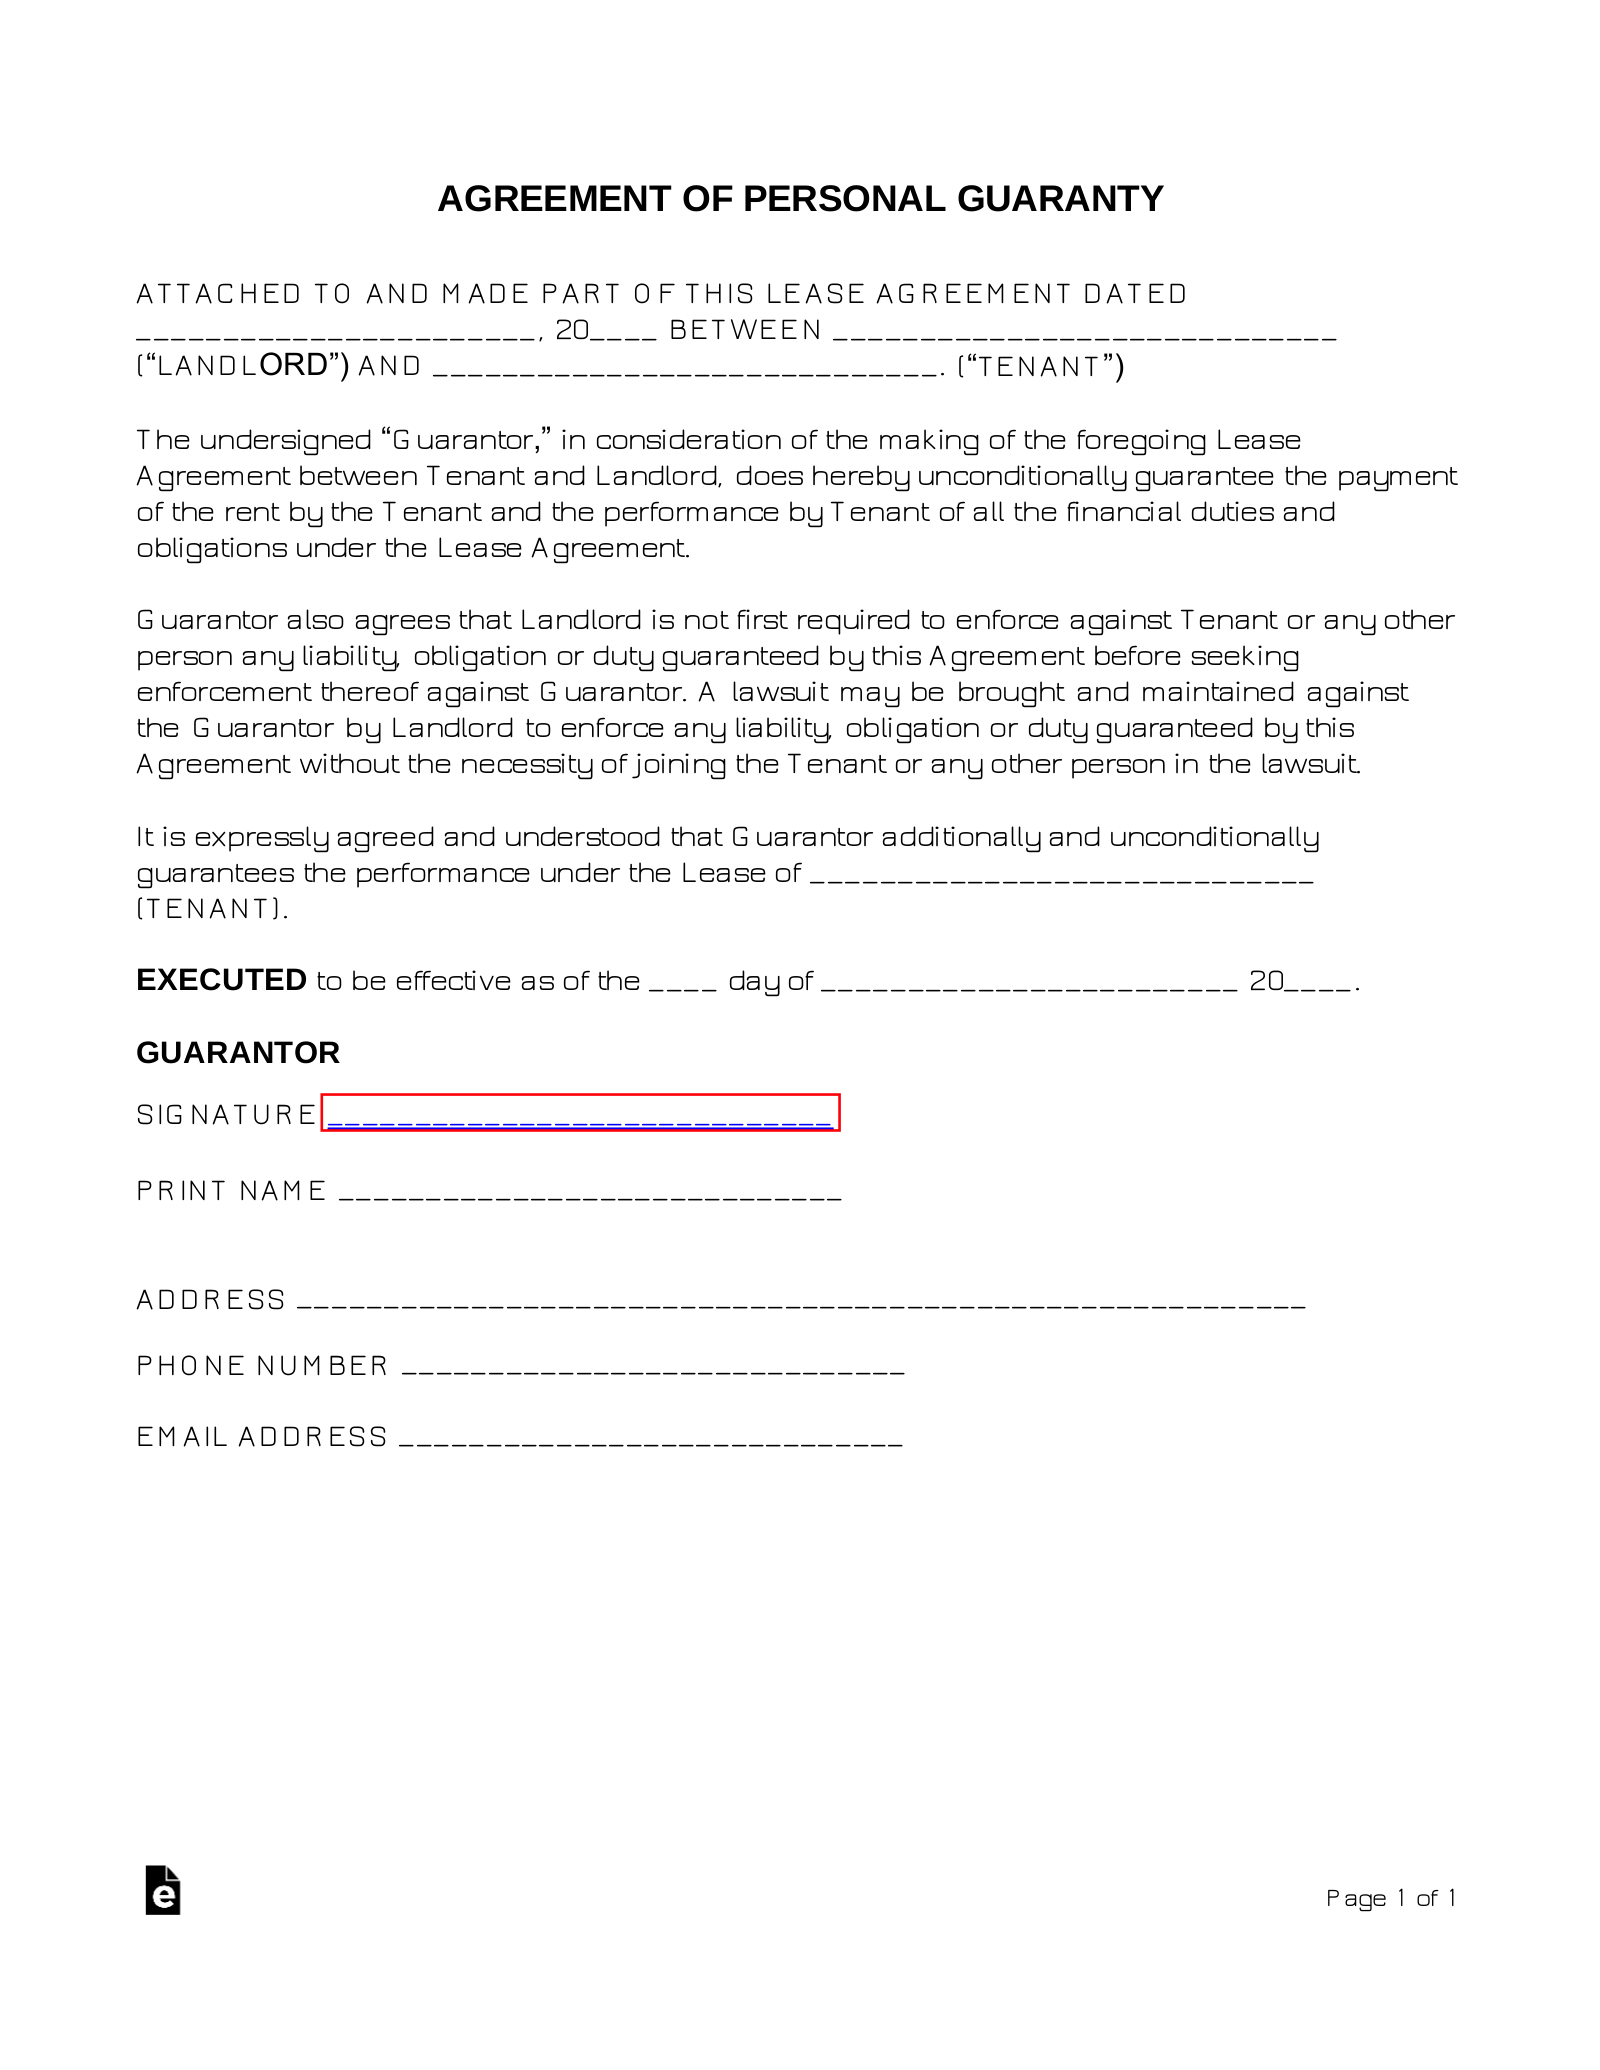 Real Estate Lease Personal Guarantee (Co-Sign) Form | eForms